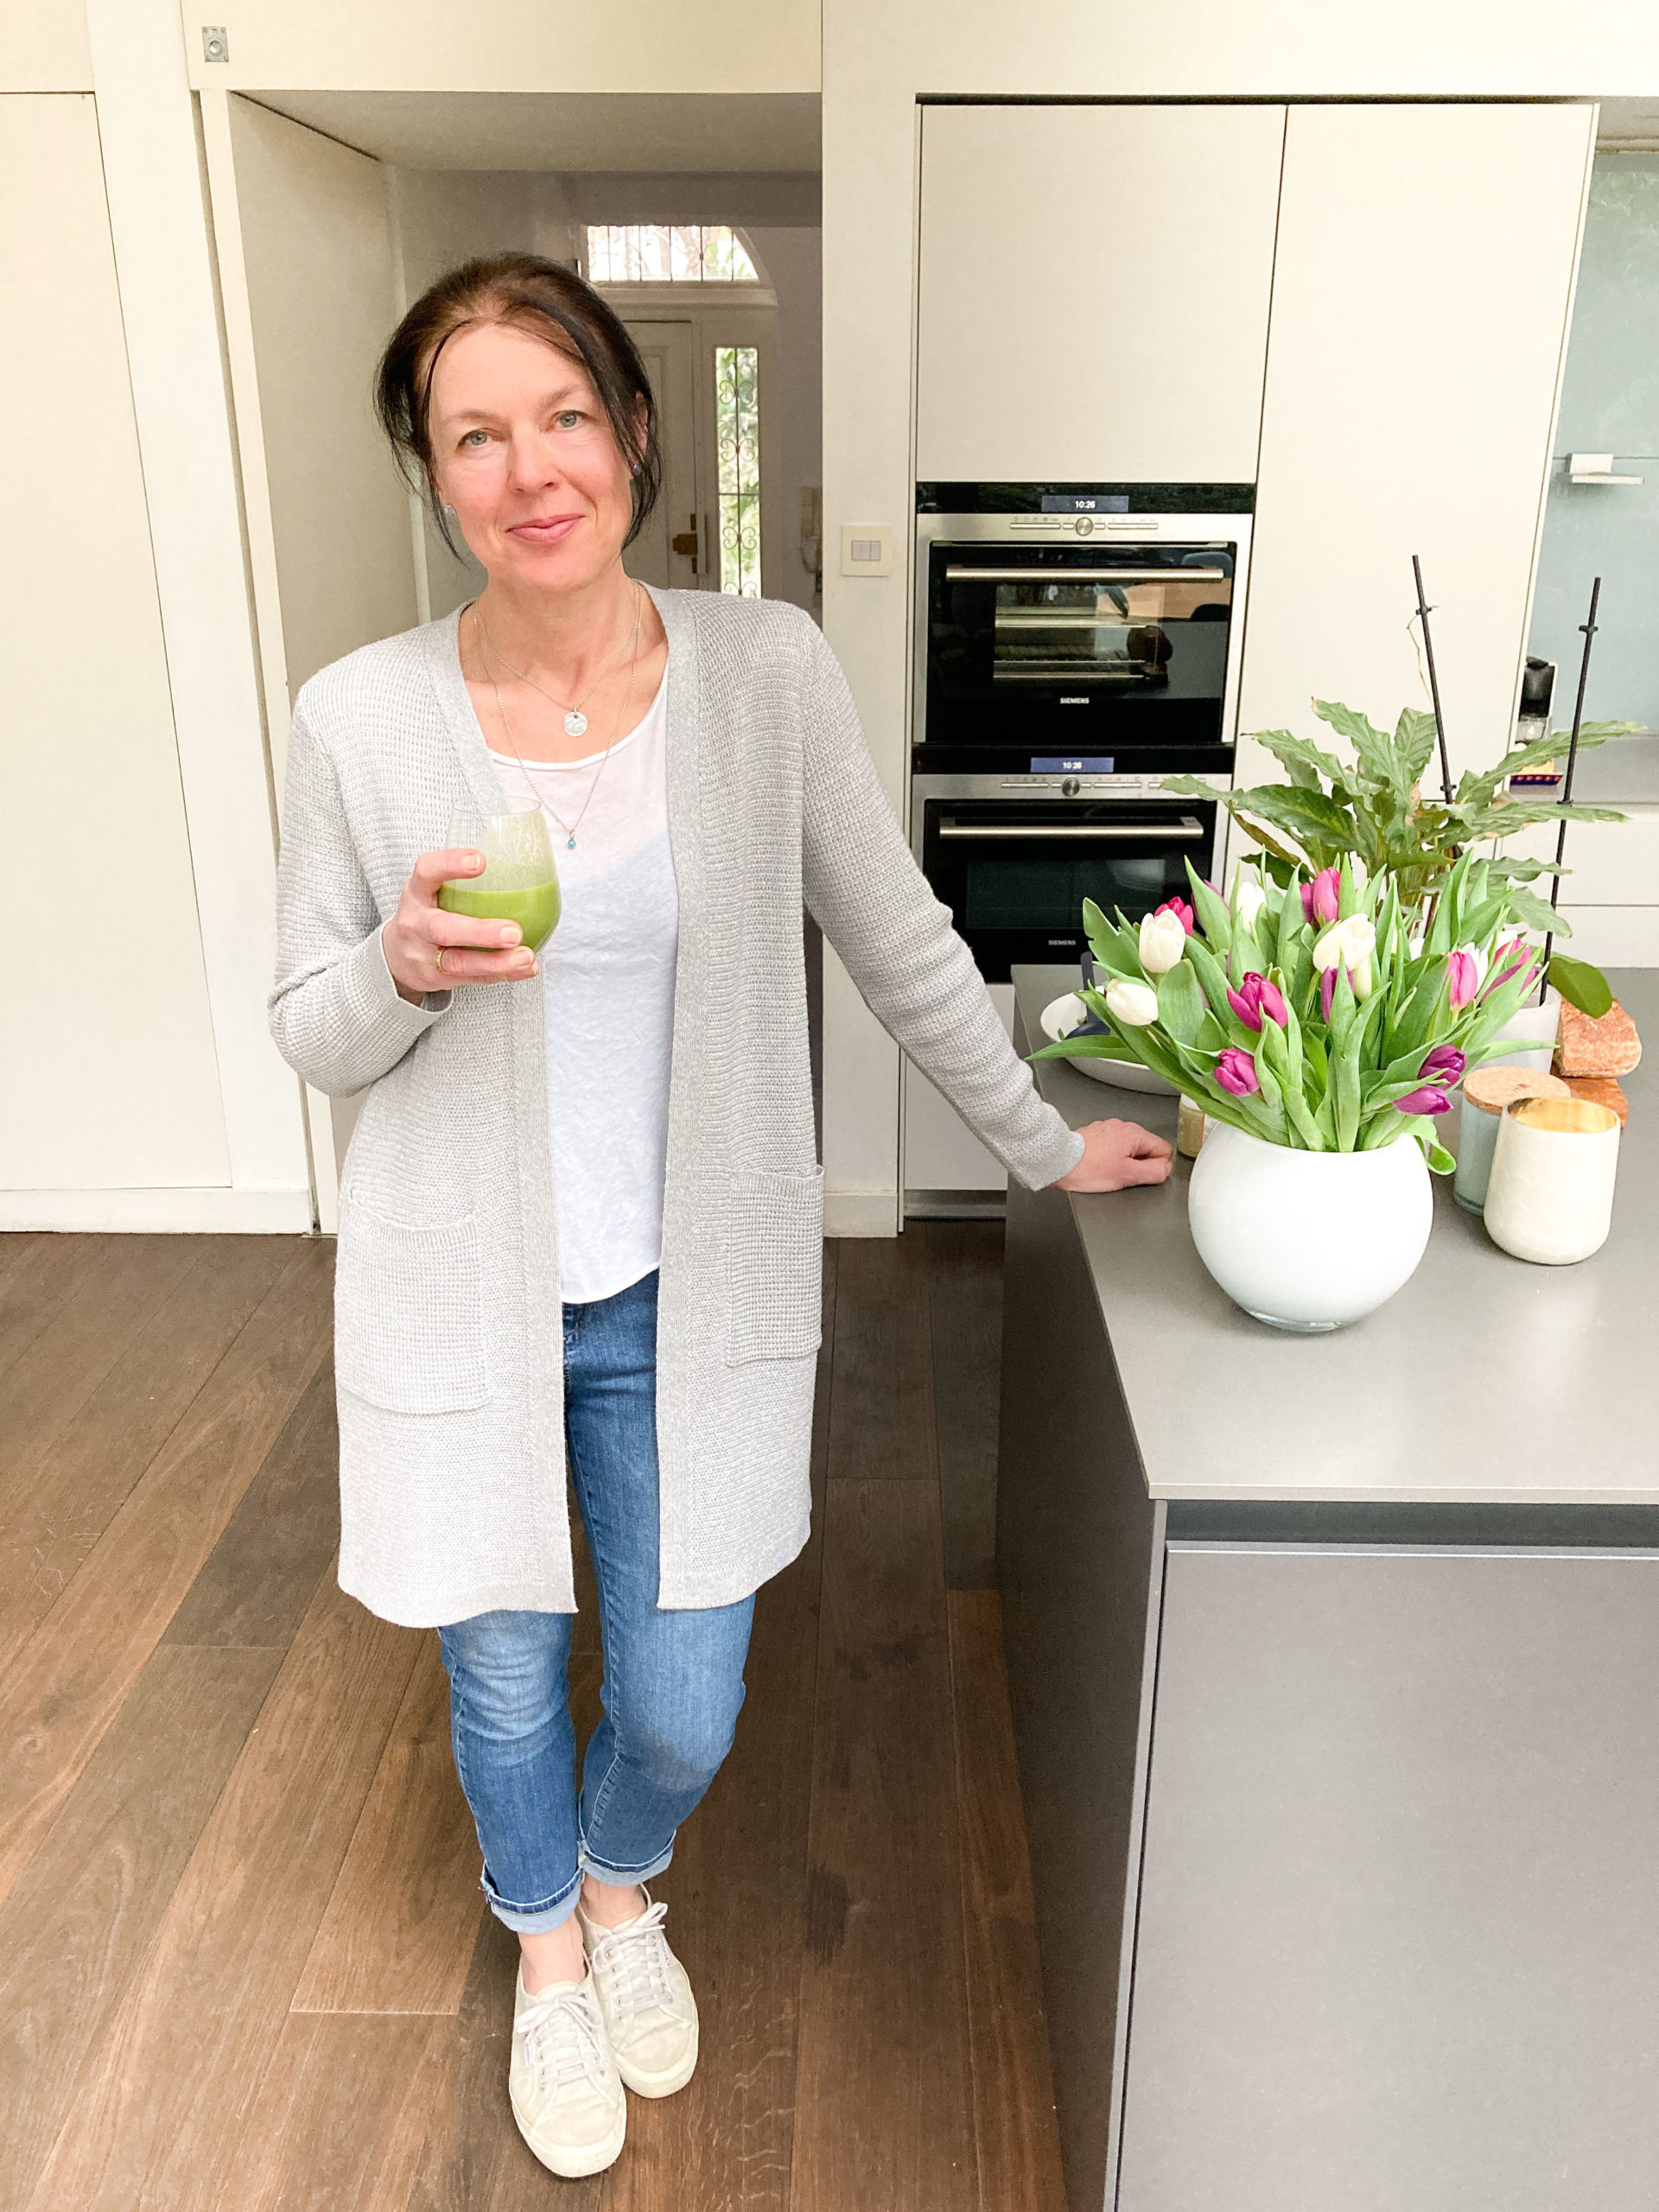 Lisa with green smoothie in the kitchen